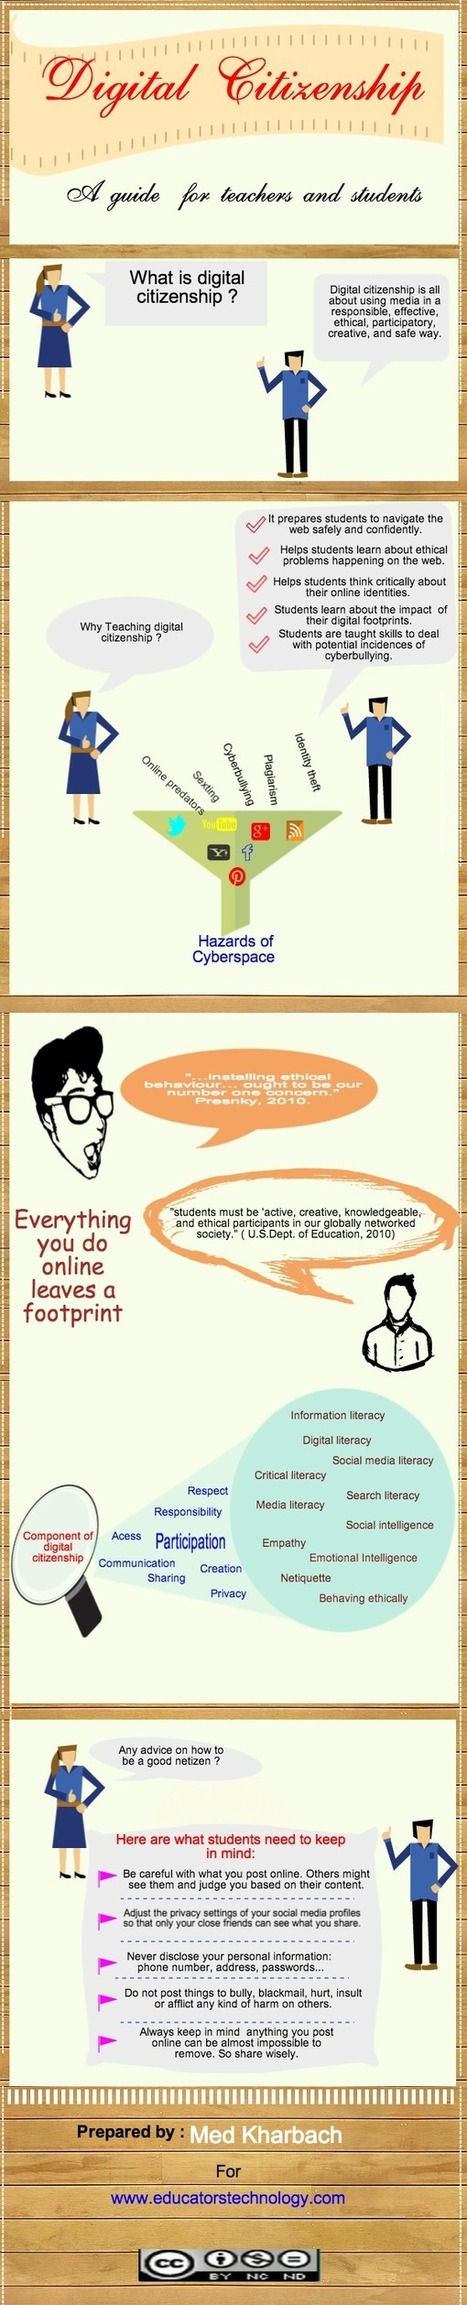 Digital Citizenship Explained for Teachers via @medkh9 | Soup for thought | Scoop.it